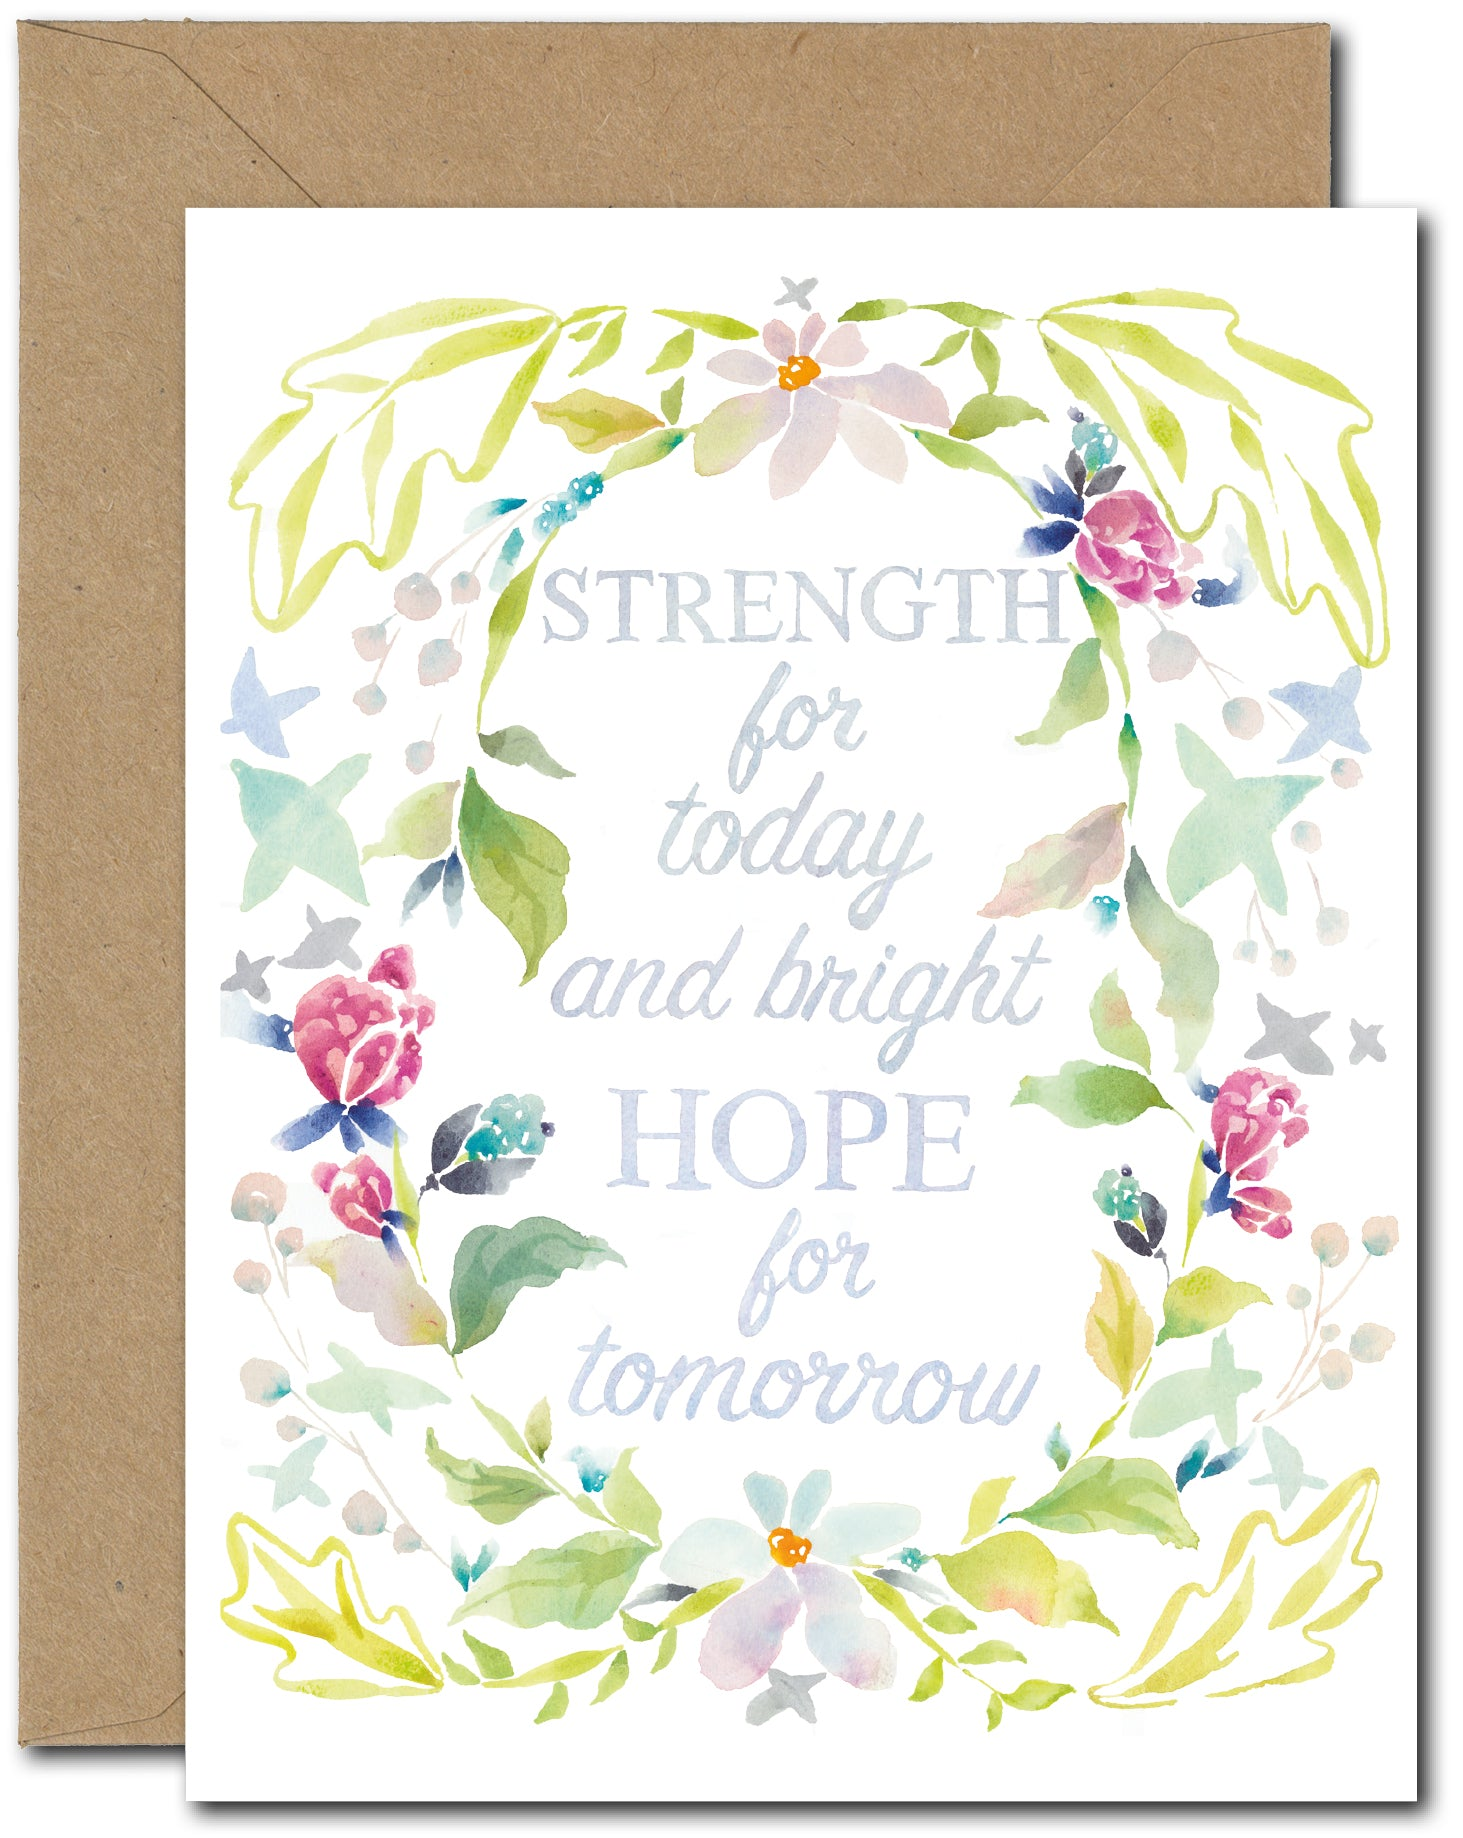 Strength & Hope